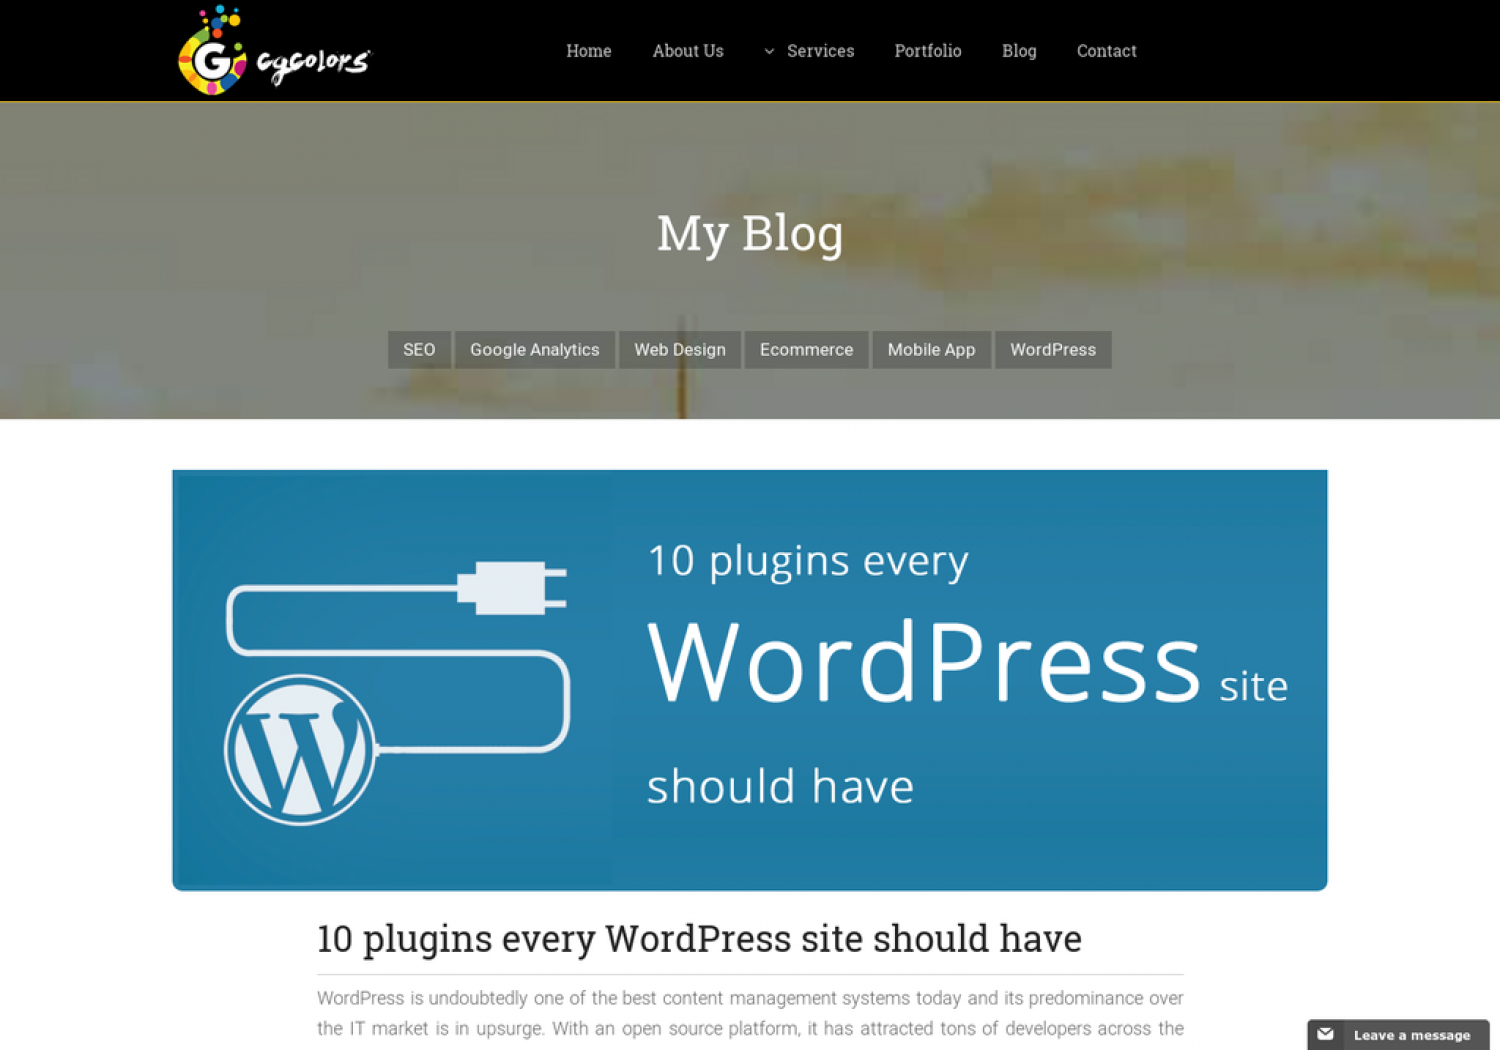 10 plugins every WordPress site should have Infographic